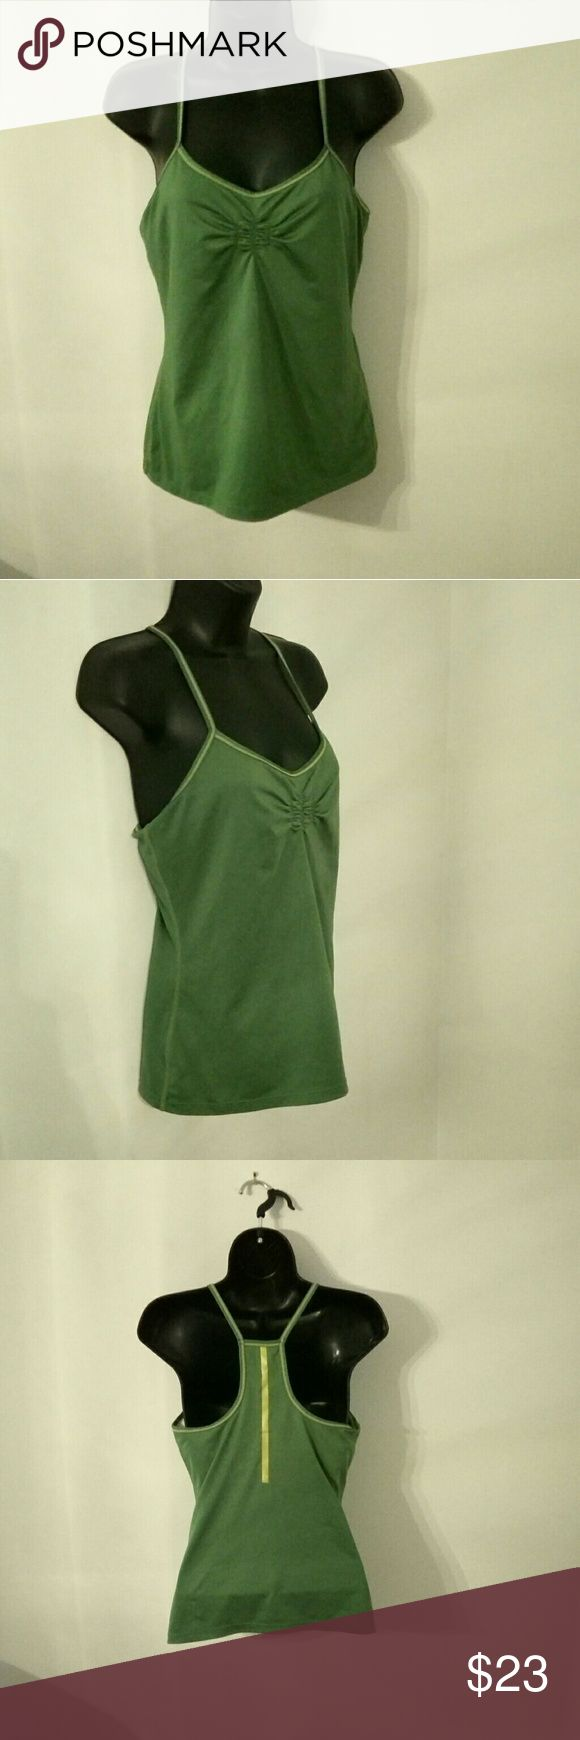 Athleta Medium Green Tunic Tank Top Racer Back Adorable and super soft and comfy Athleta brand green tank top with yellow accents.  Size medium and featuring a racer back style.  Shelf bra. Athleta Tops Tank Tops